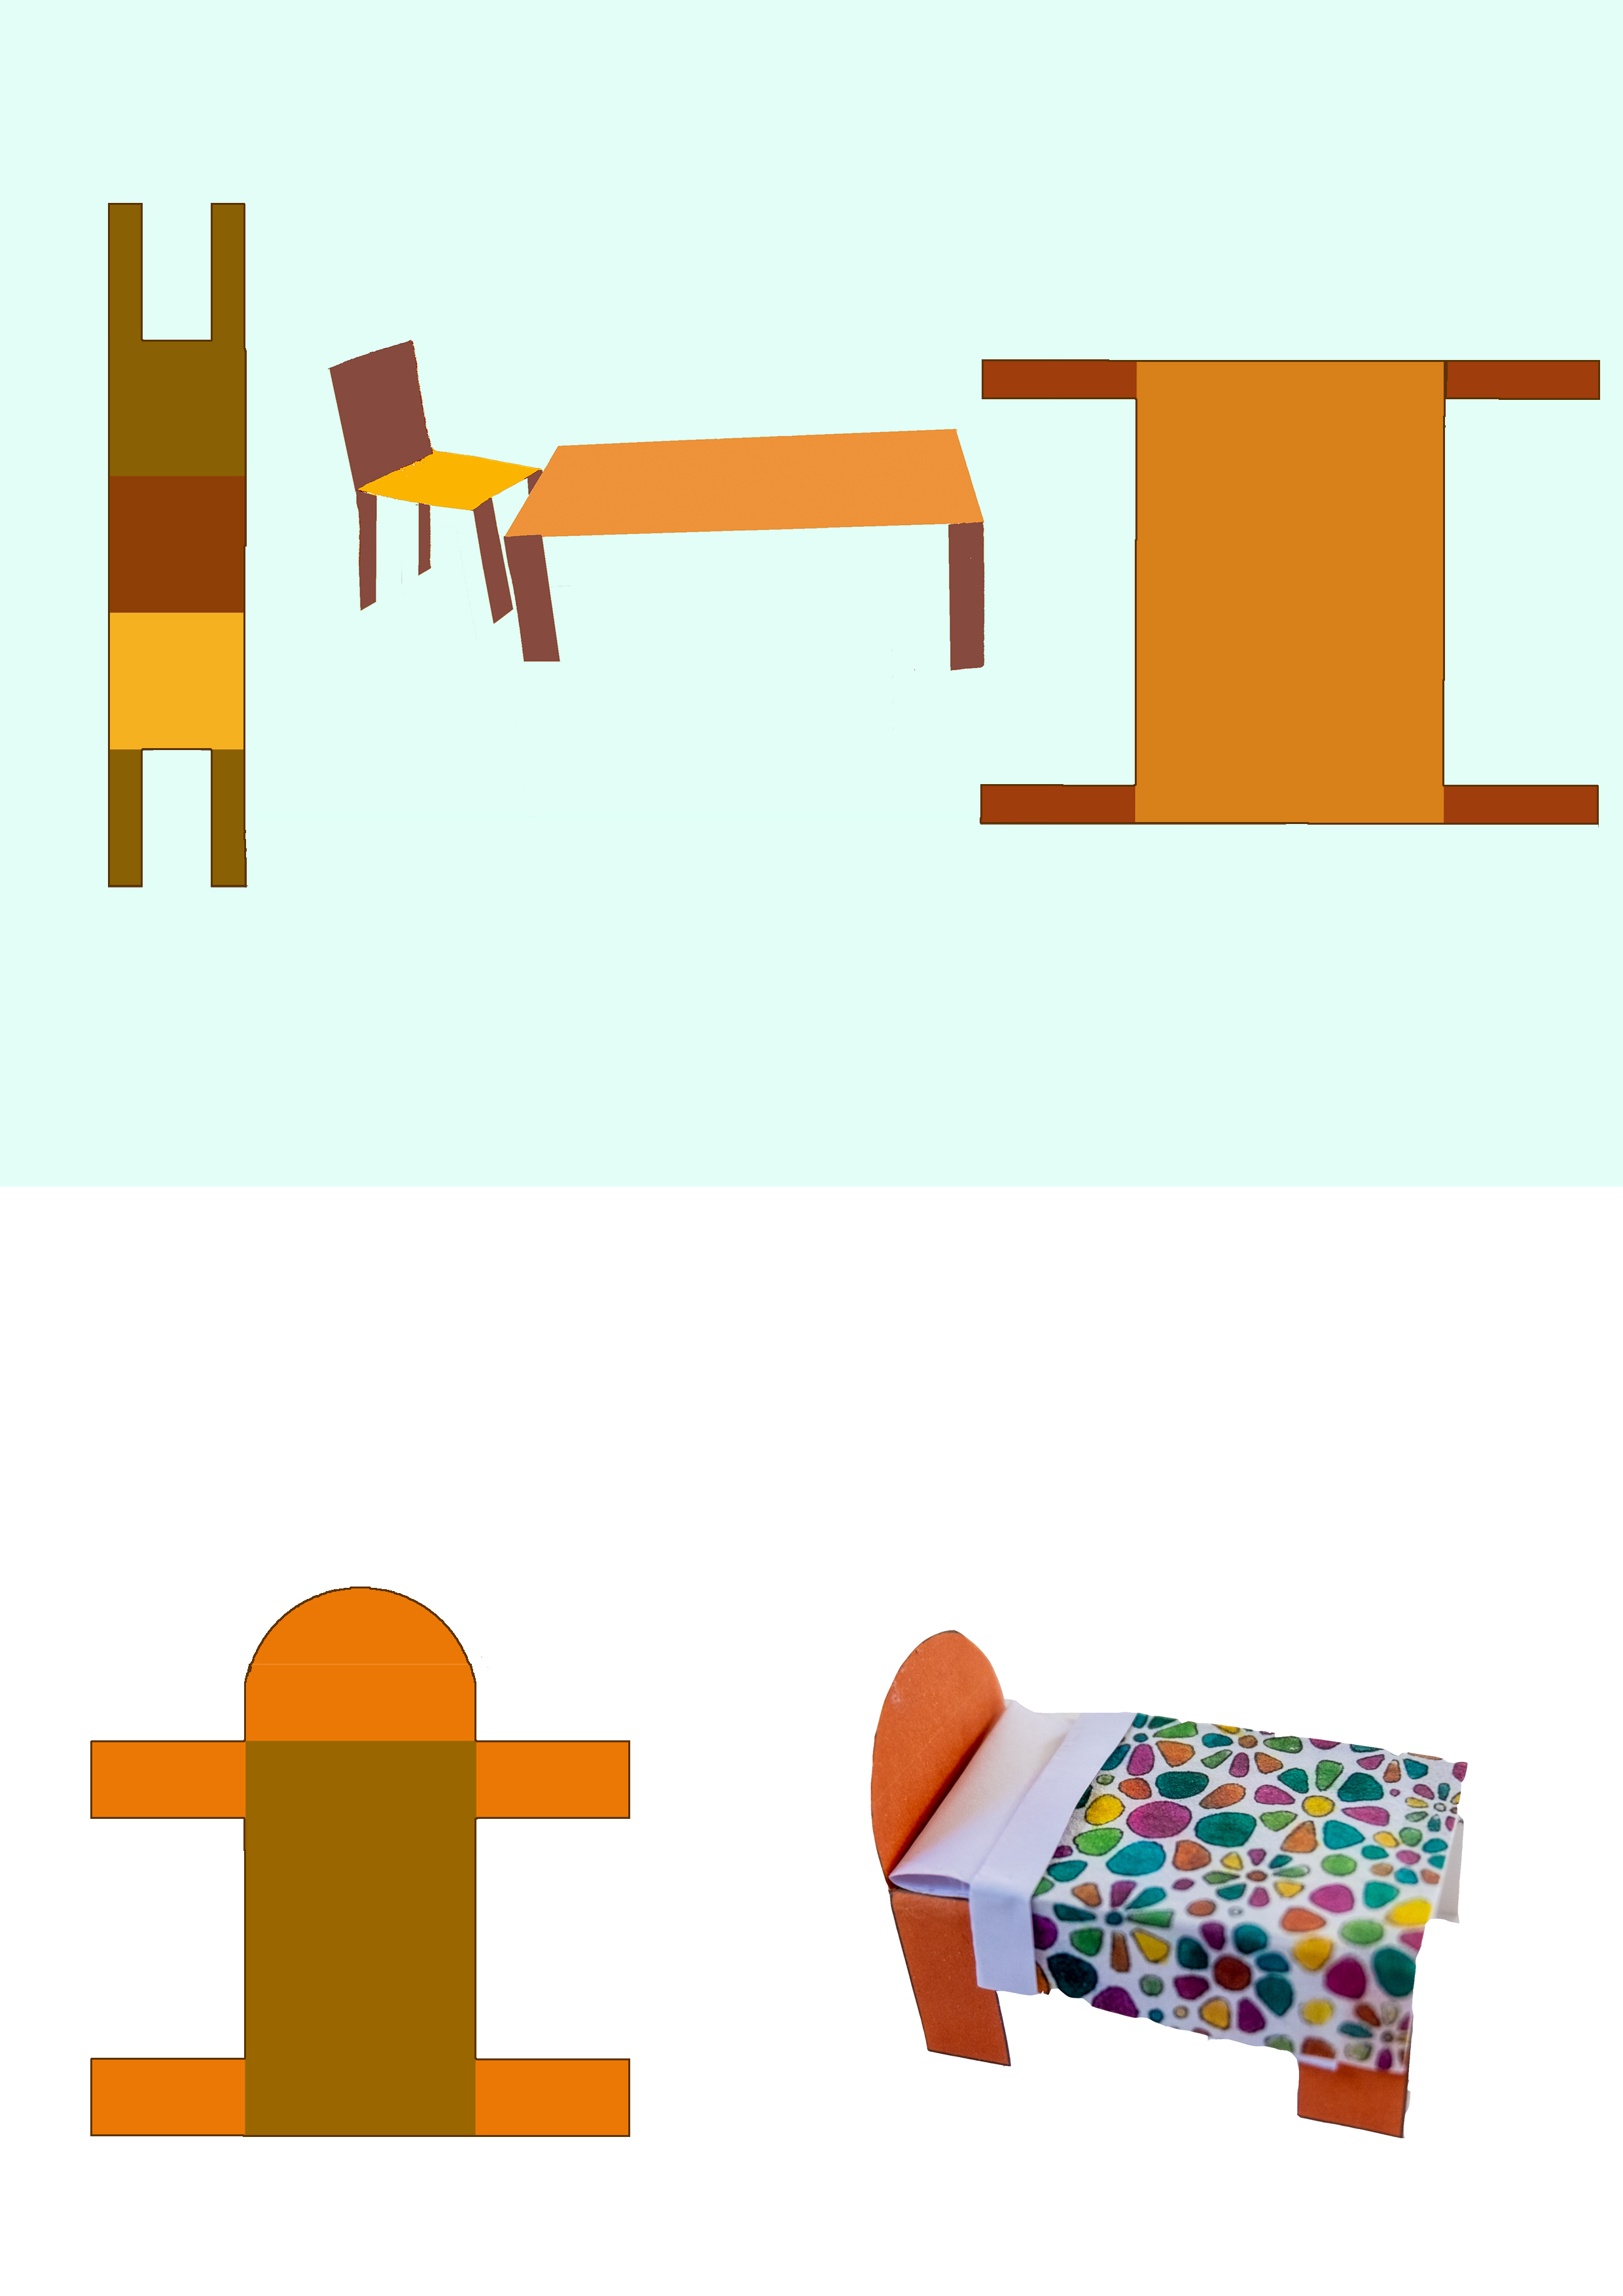 Furniture examples, use these shapes as templates to make a table, chair or bed